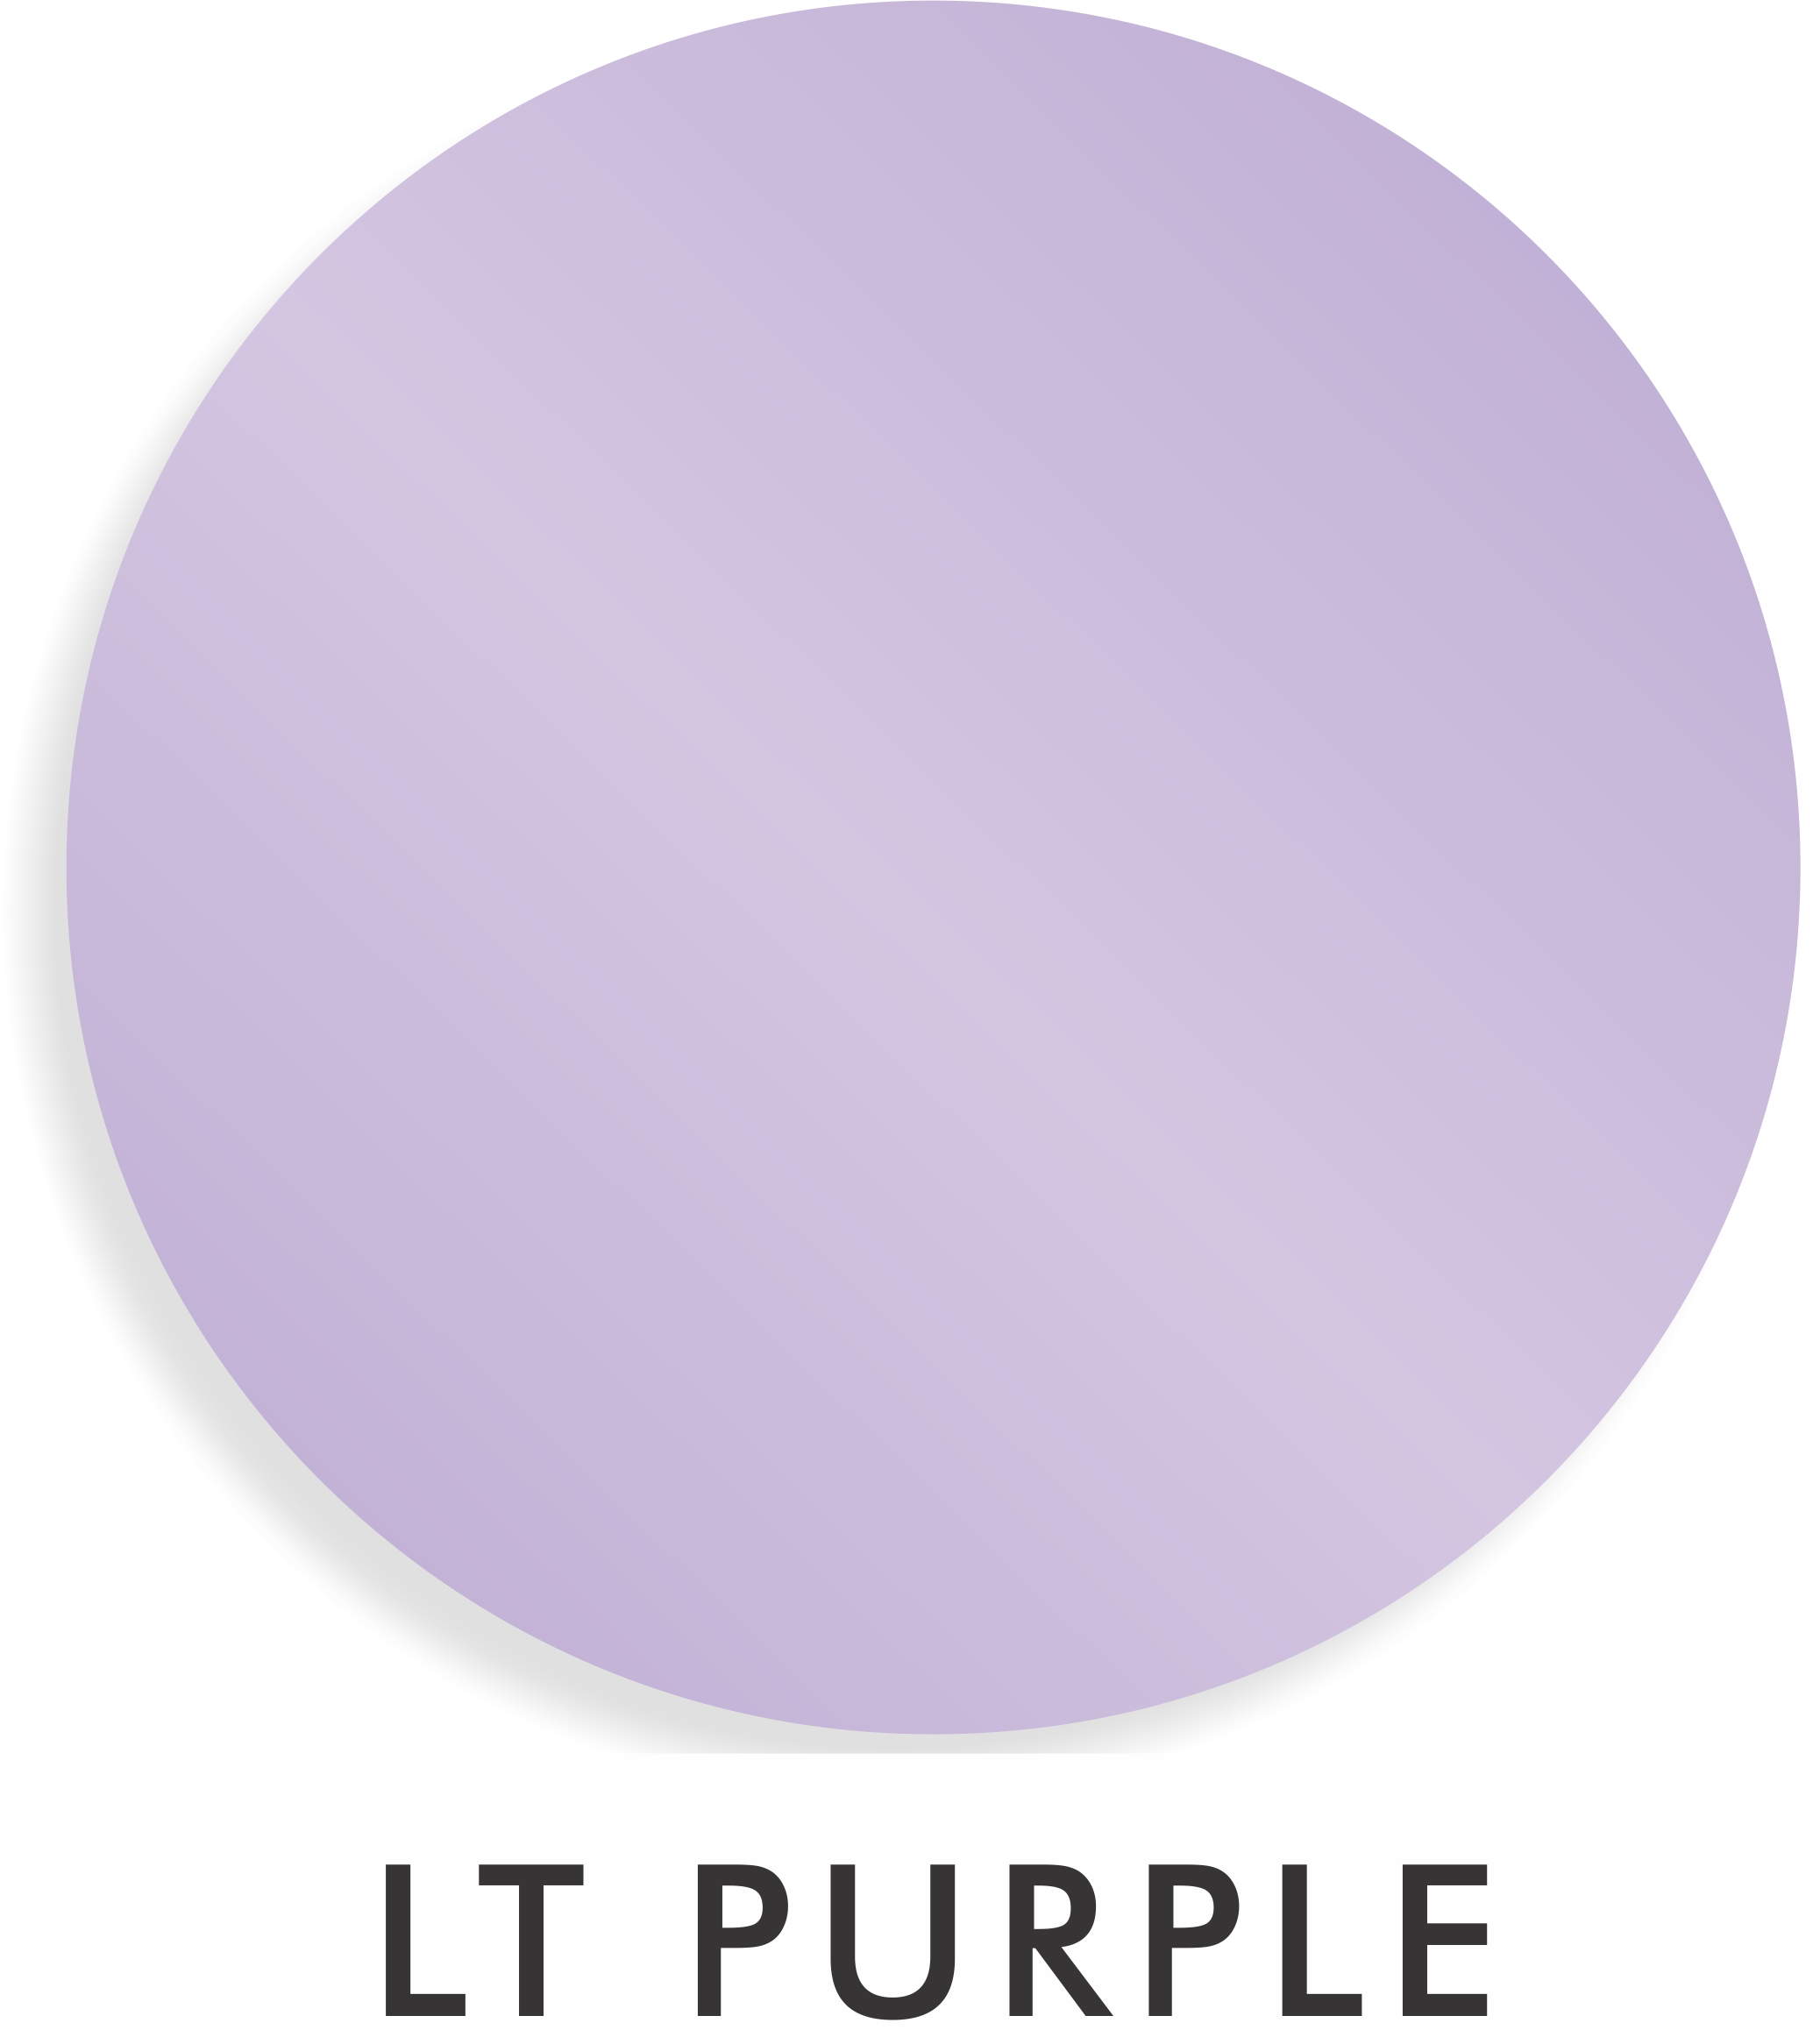 LT PURPLE FOIL.png